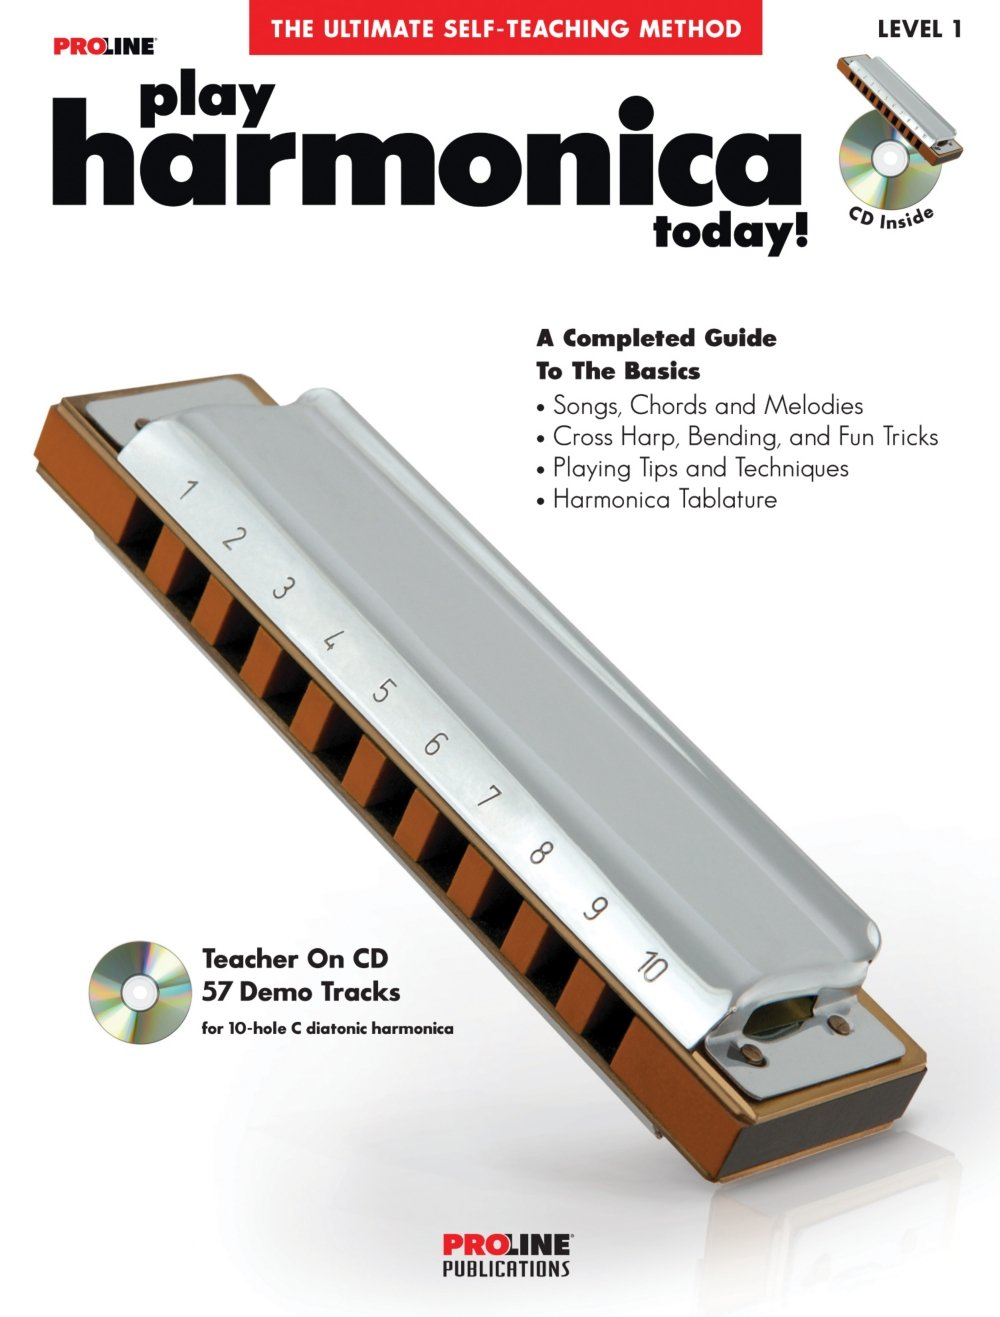 proline-play-harmonica-today-method-book-with-cd-dvd